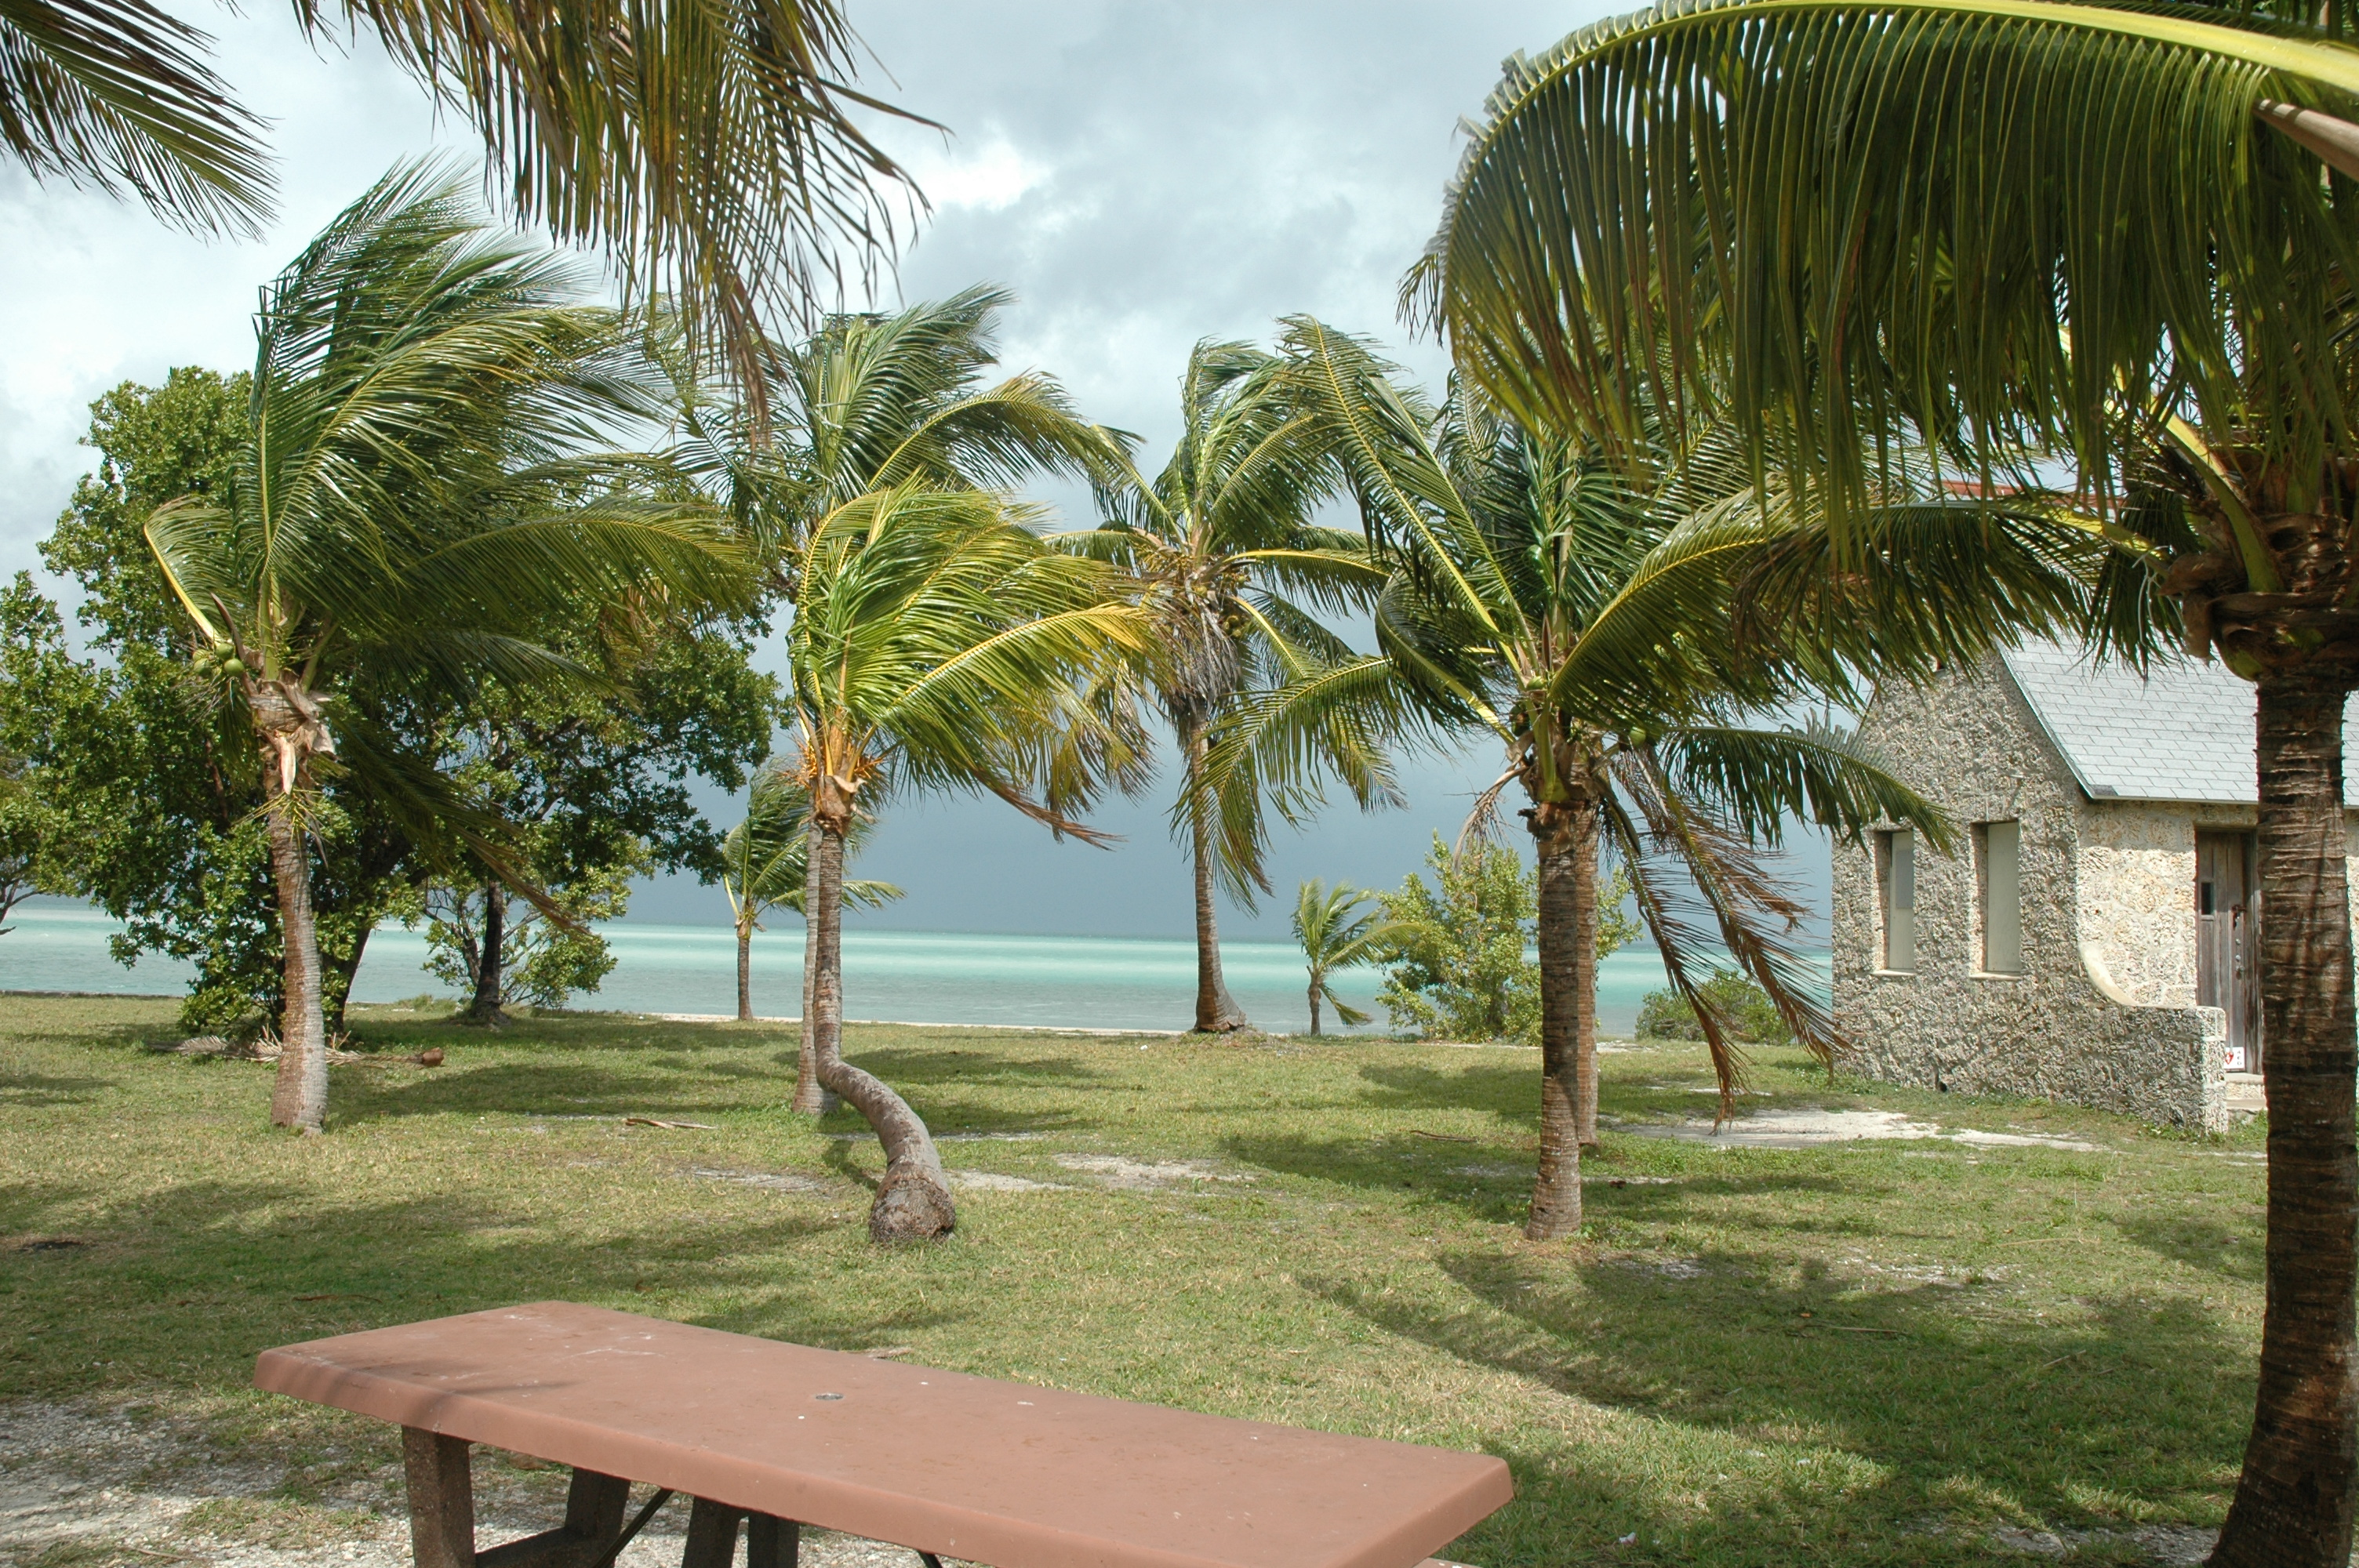 Part of the campground on Boca Chita Key.